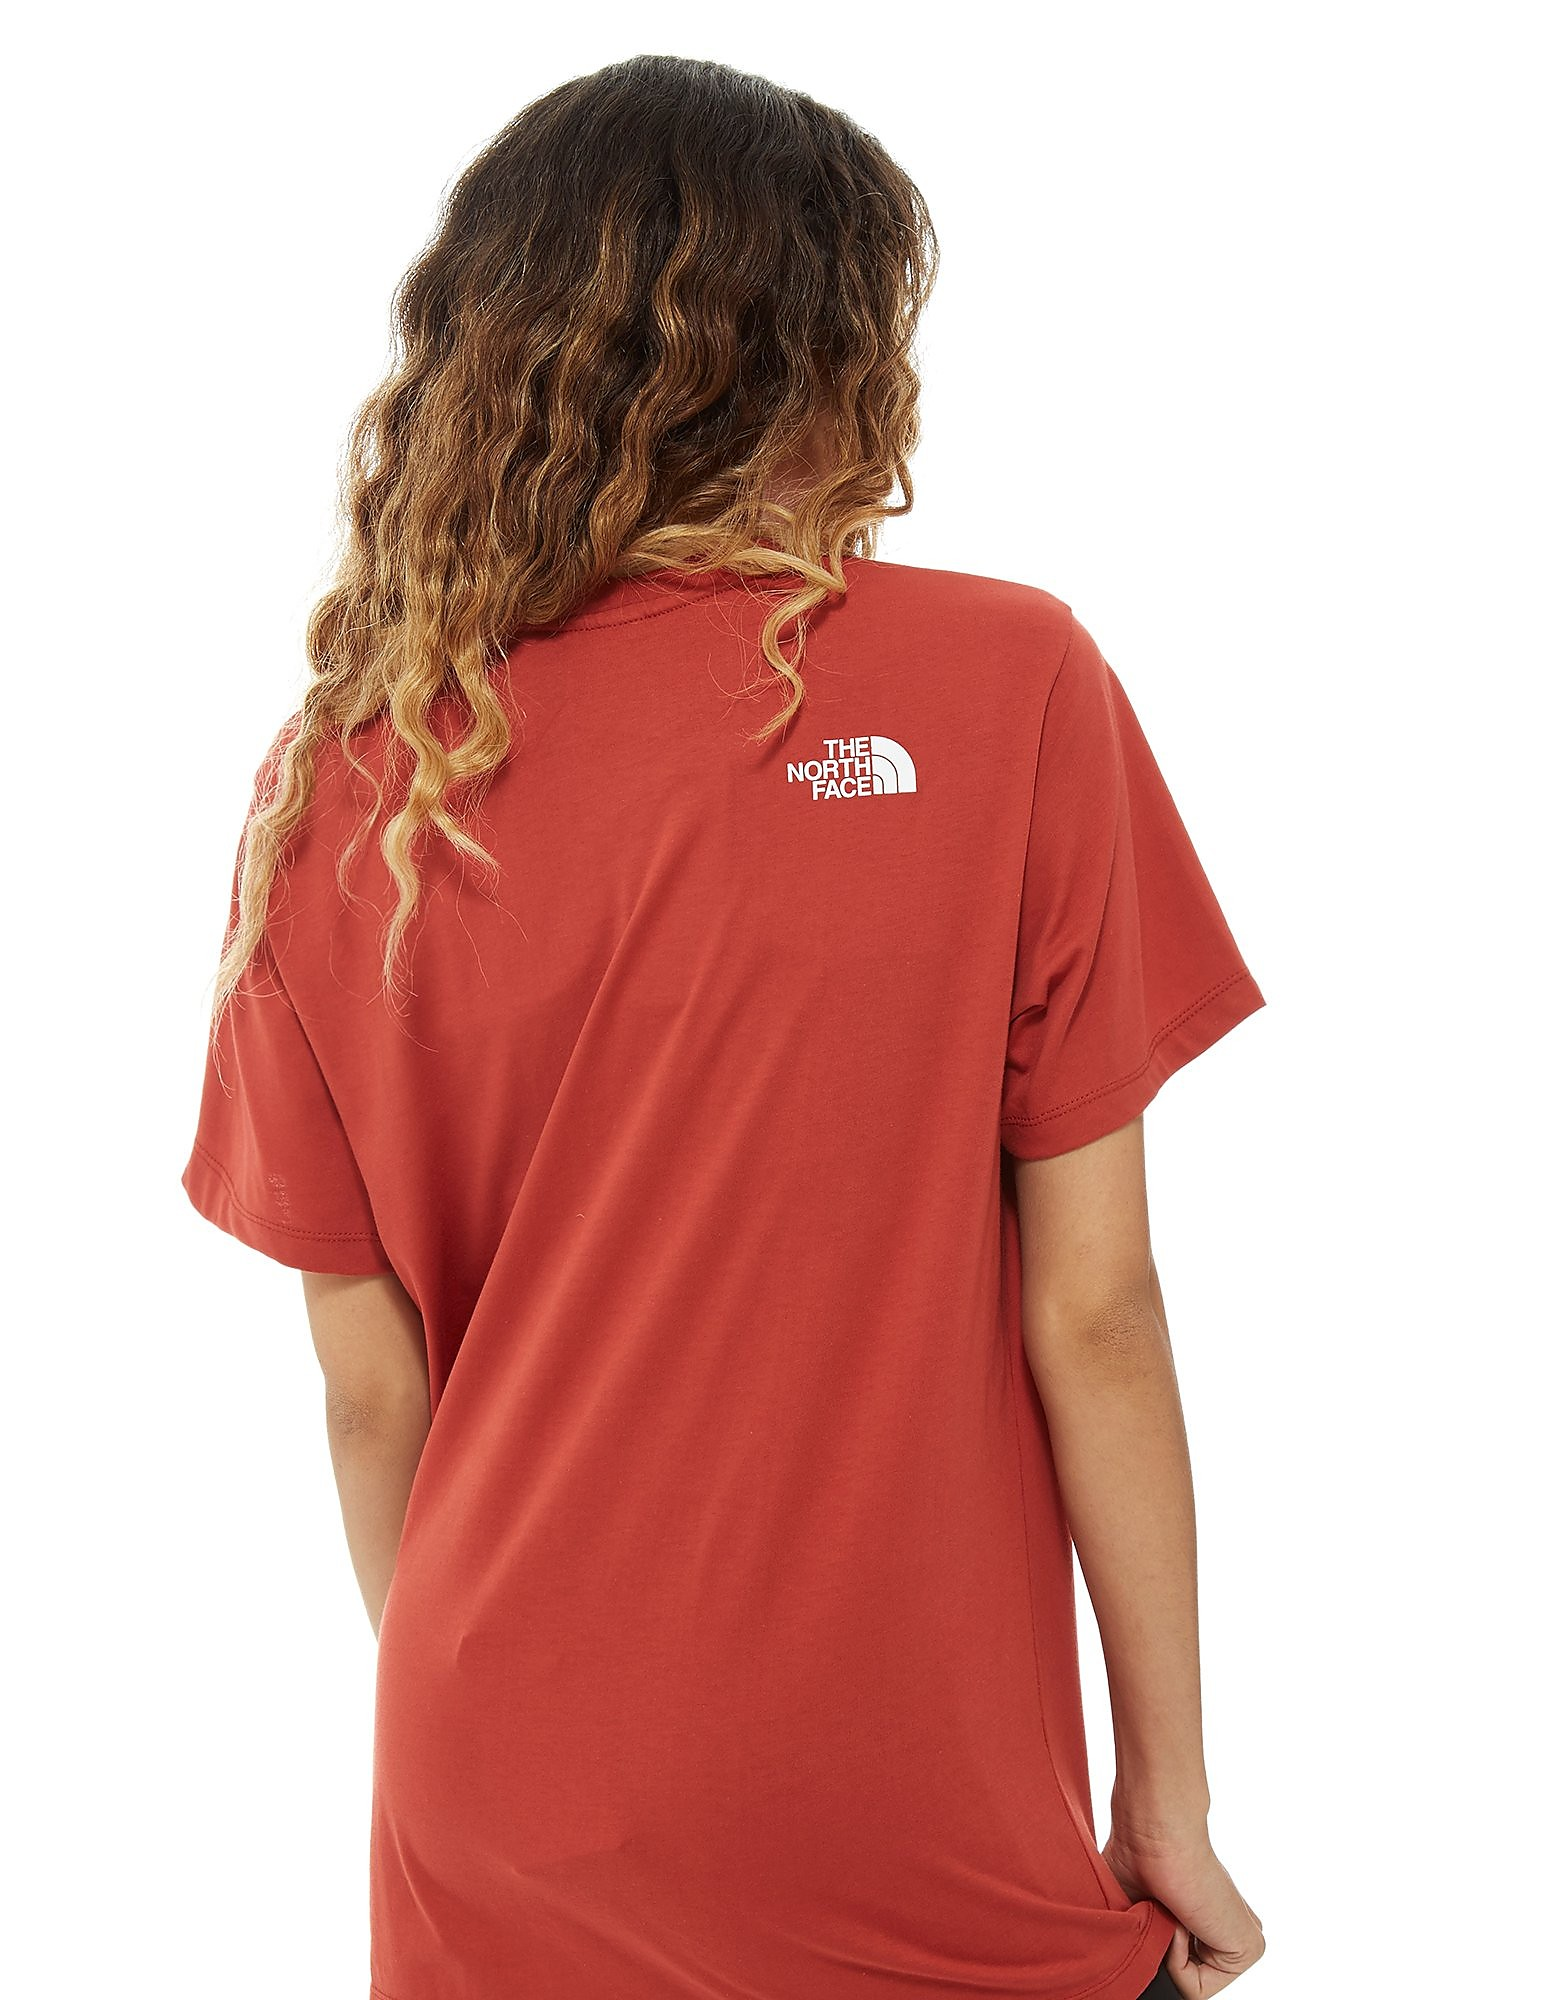 The North Face Boyfriend T-Shirt Femme